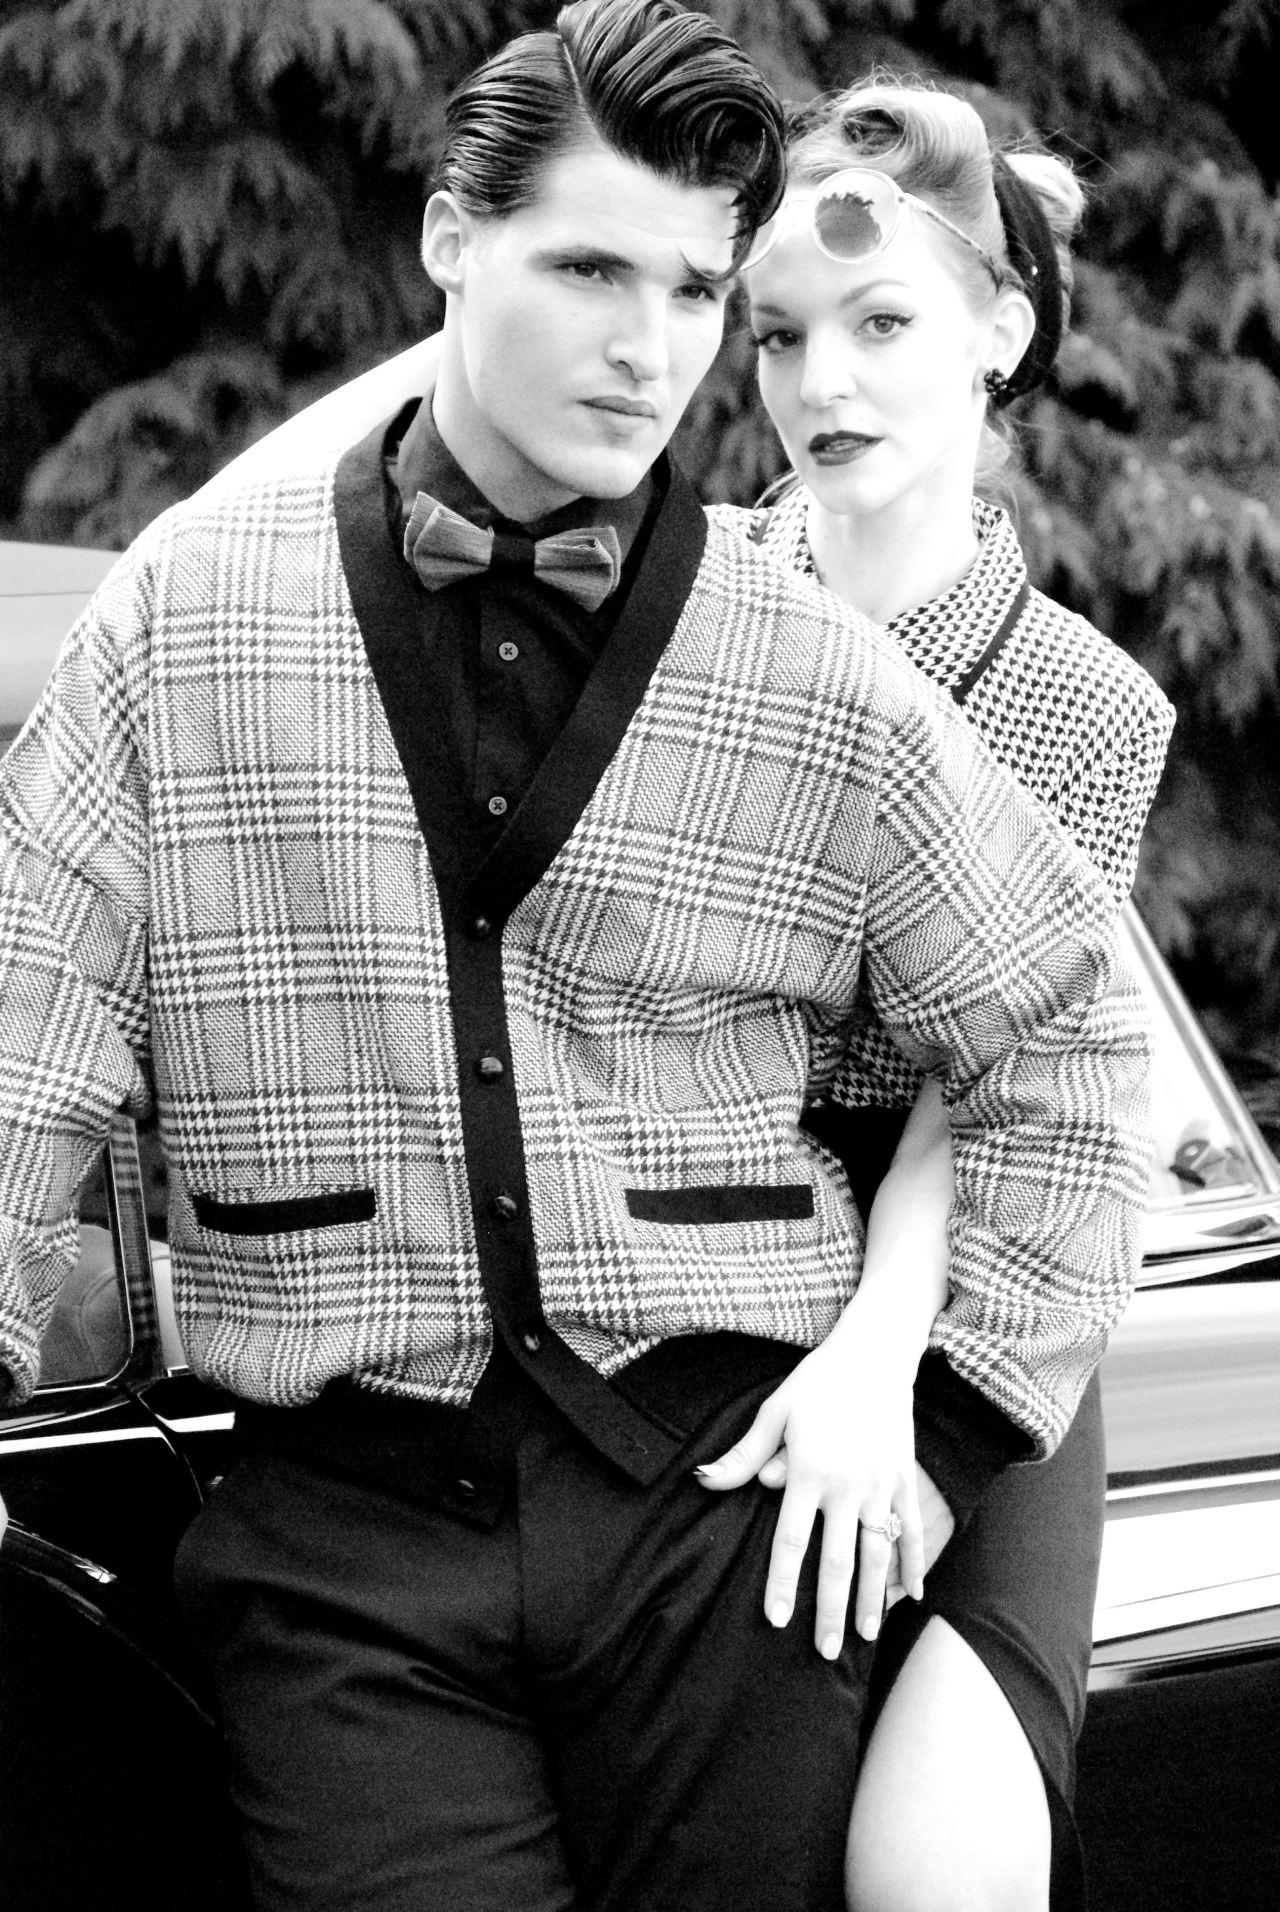 Classic 50's fall fashion